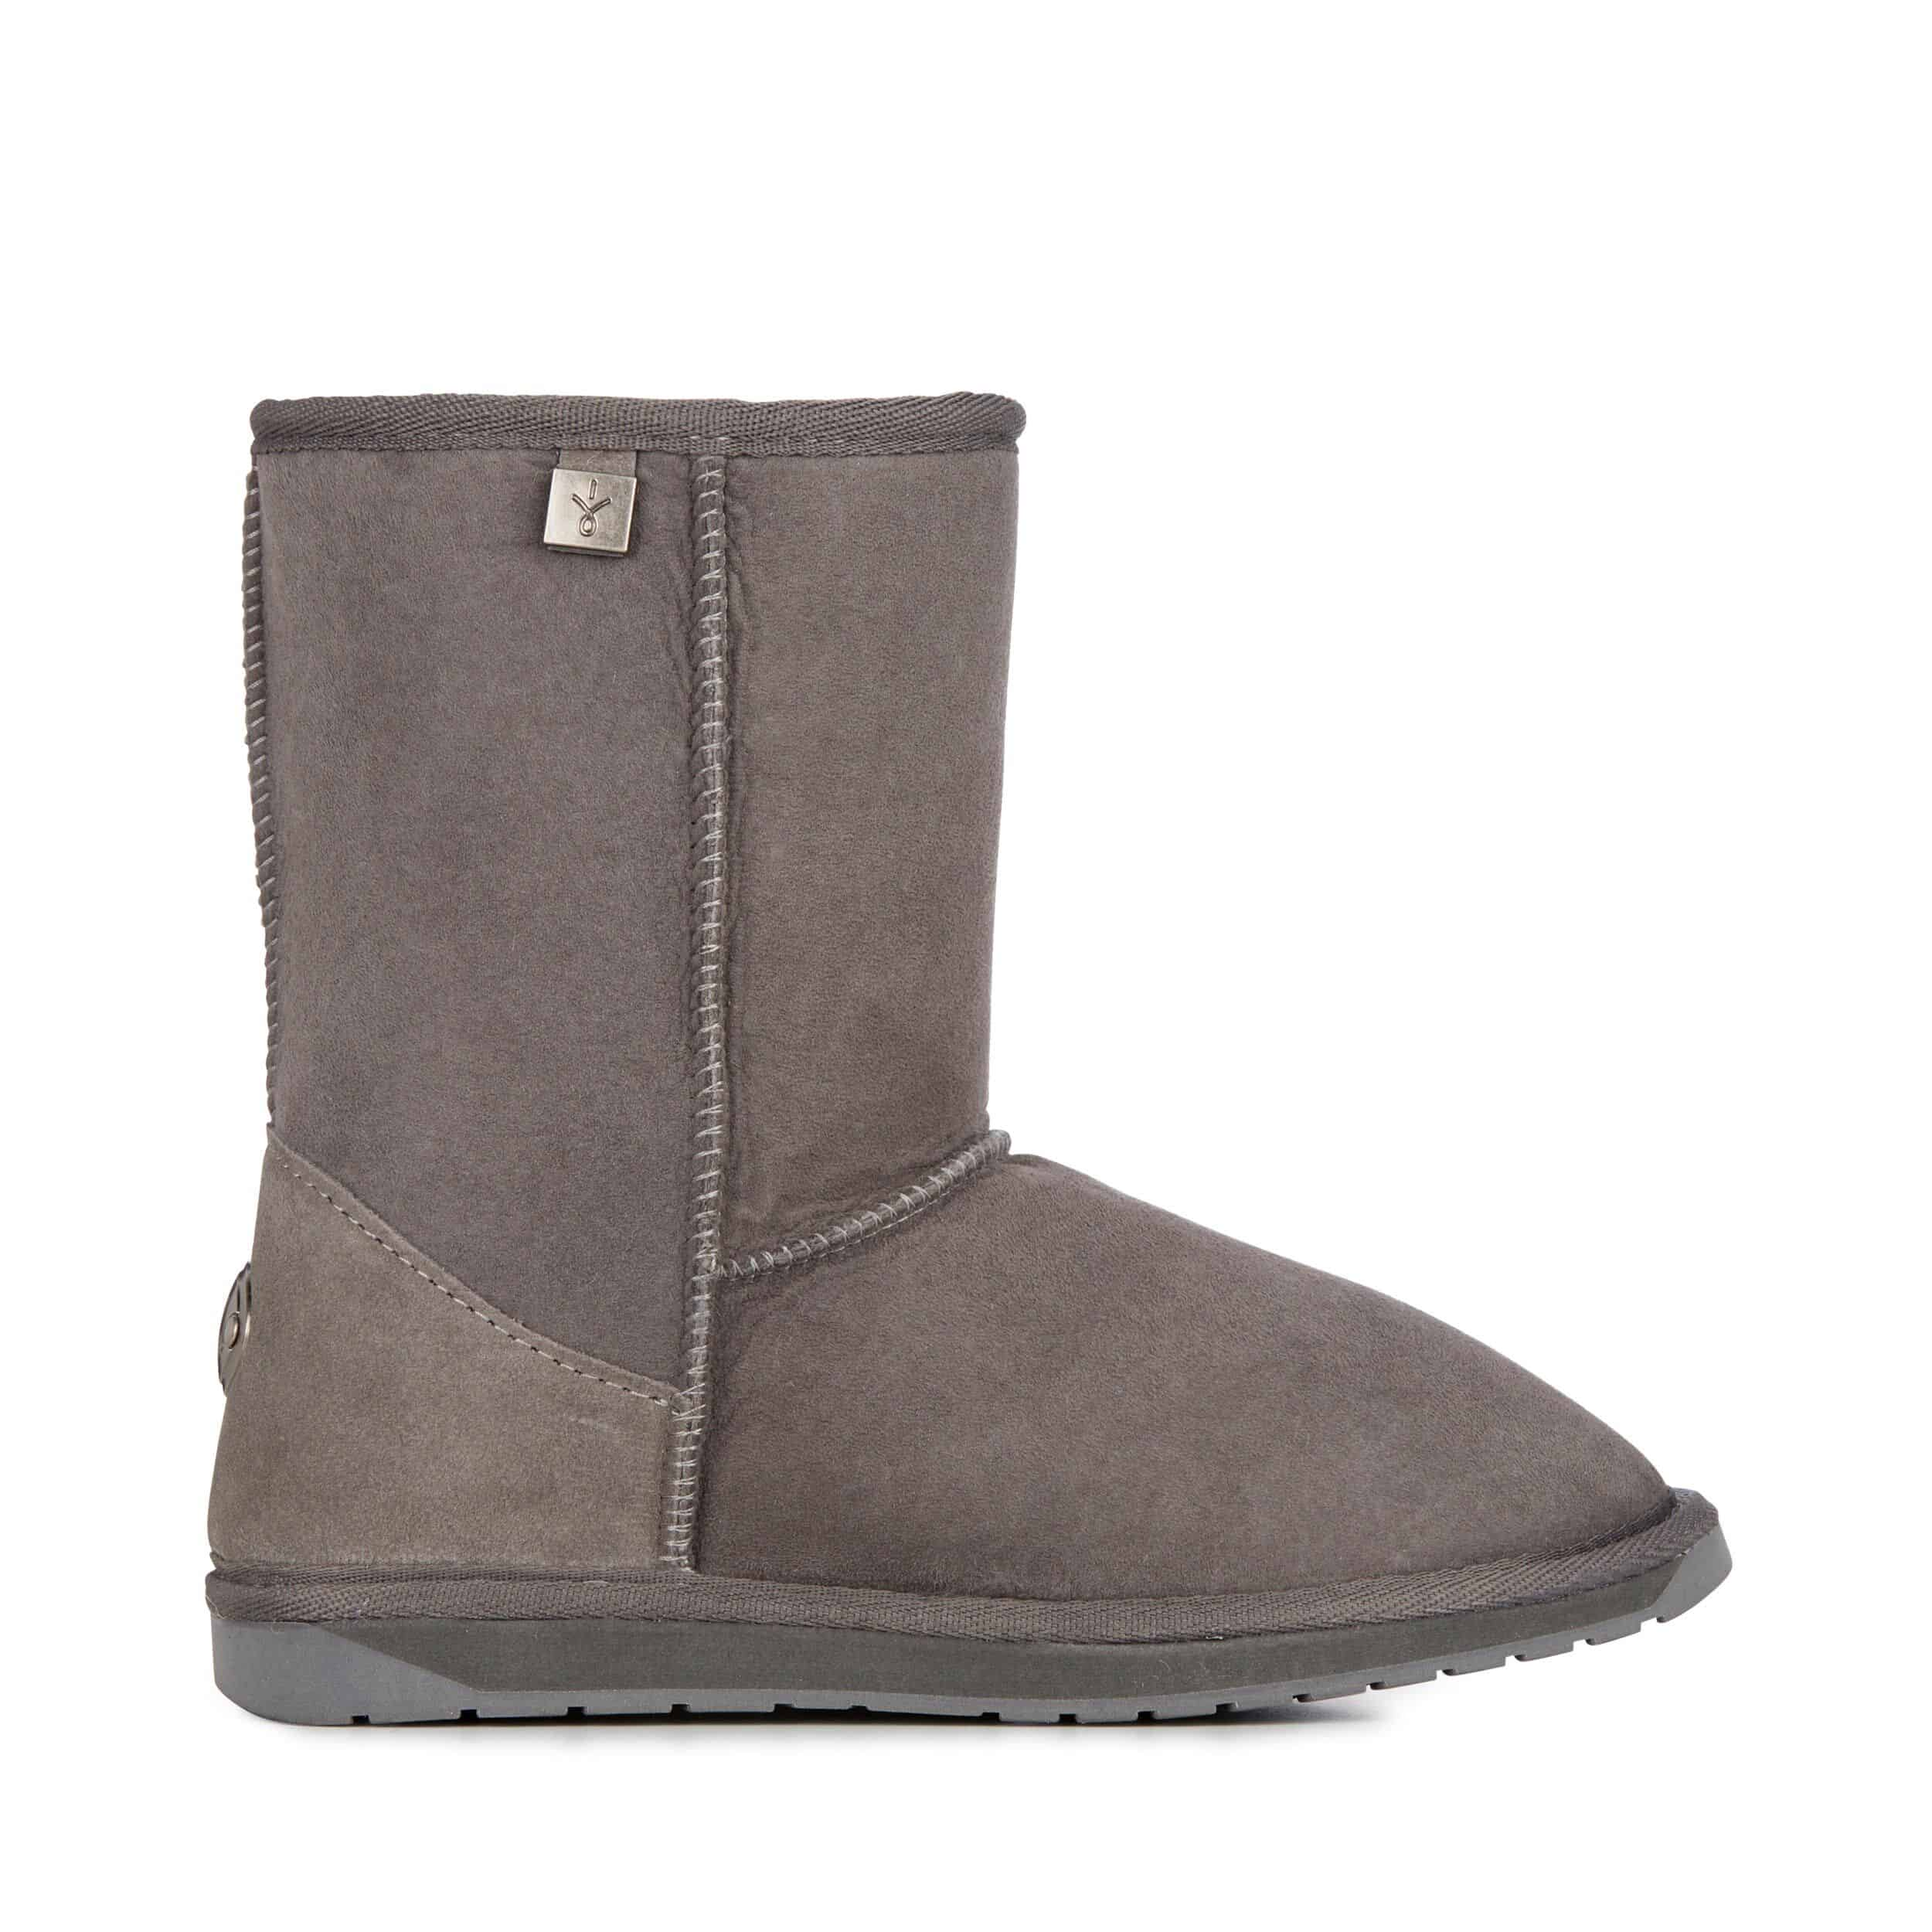 Emu boots is one of the best gifts for someone who is always cold